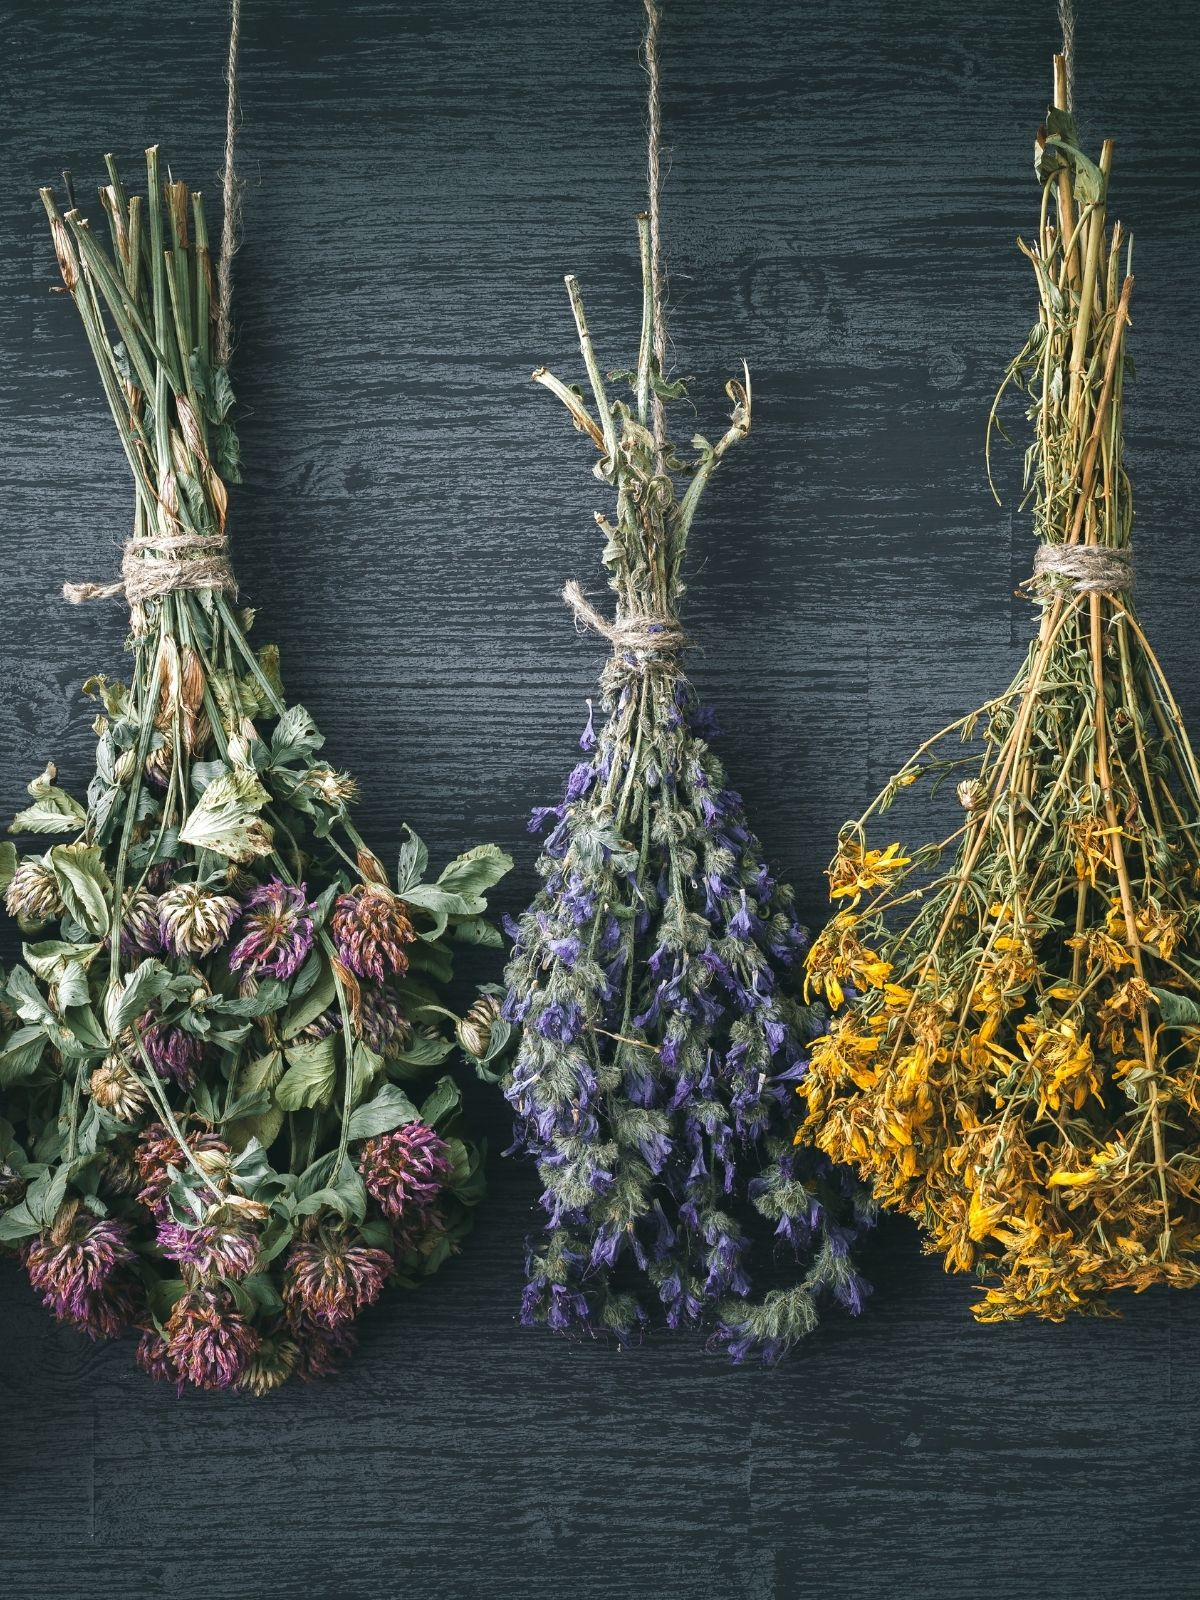 5 Benefits Of Dried Flowers